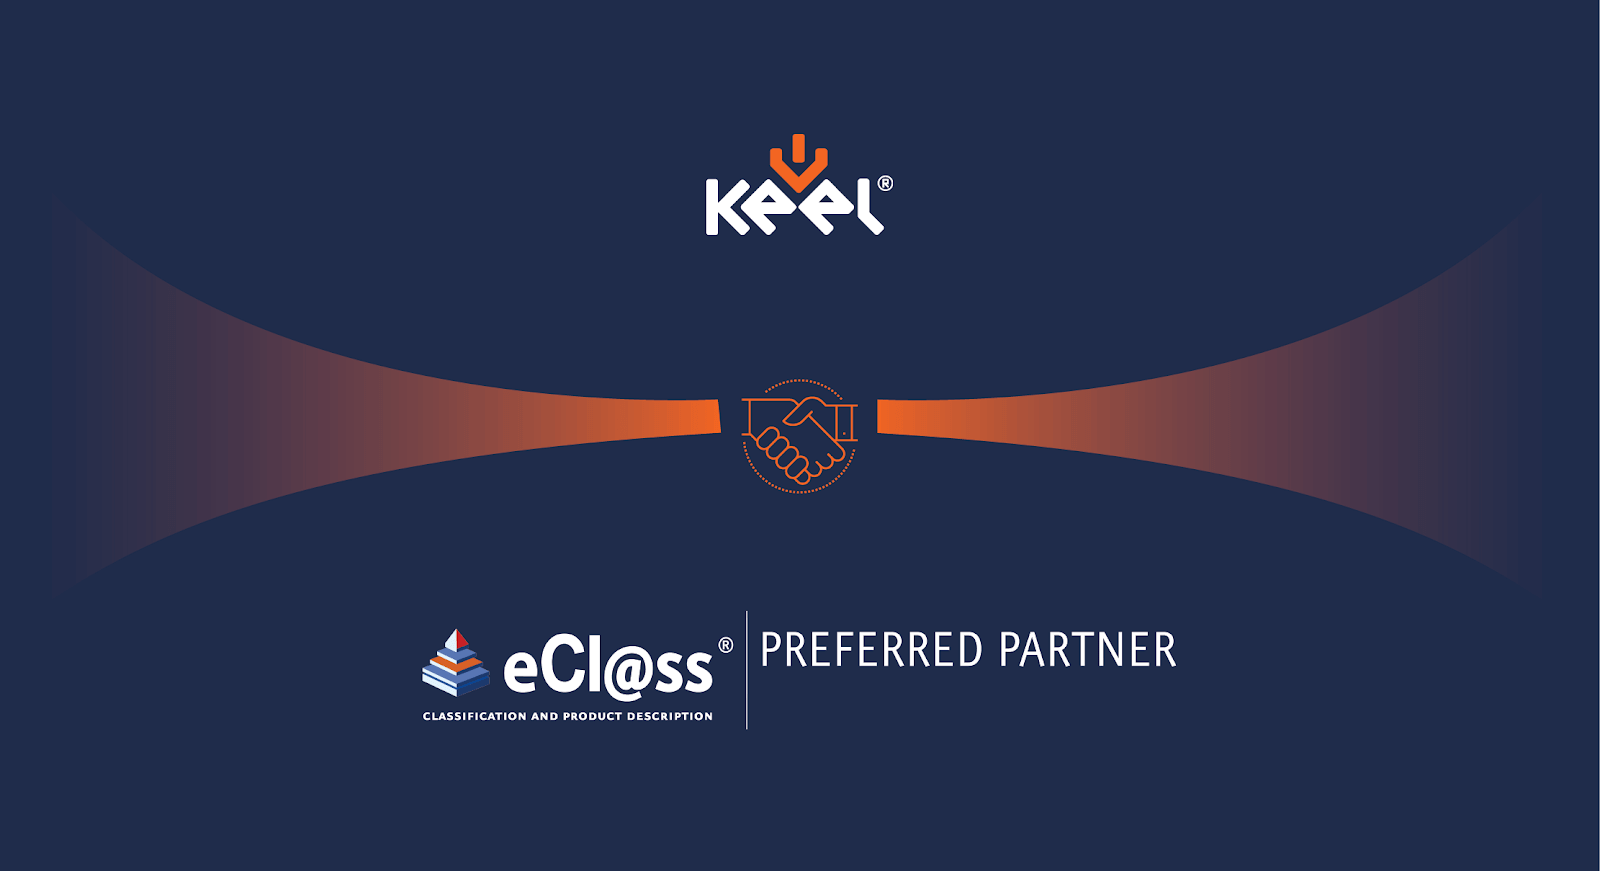 Keel Solution - ecl@ss preferred partner